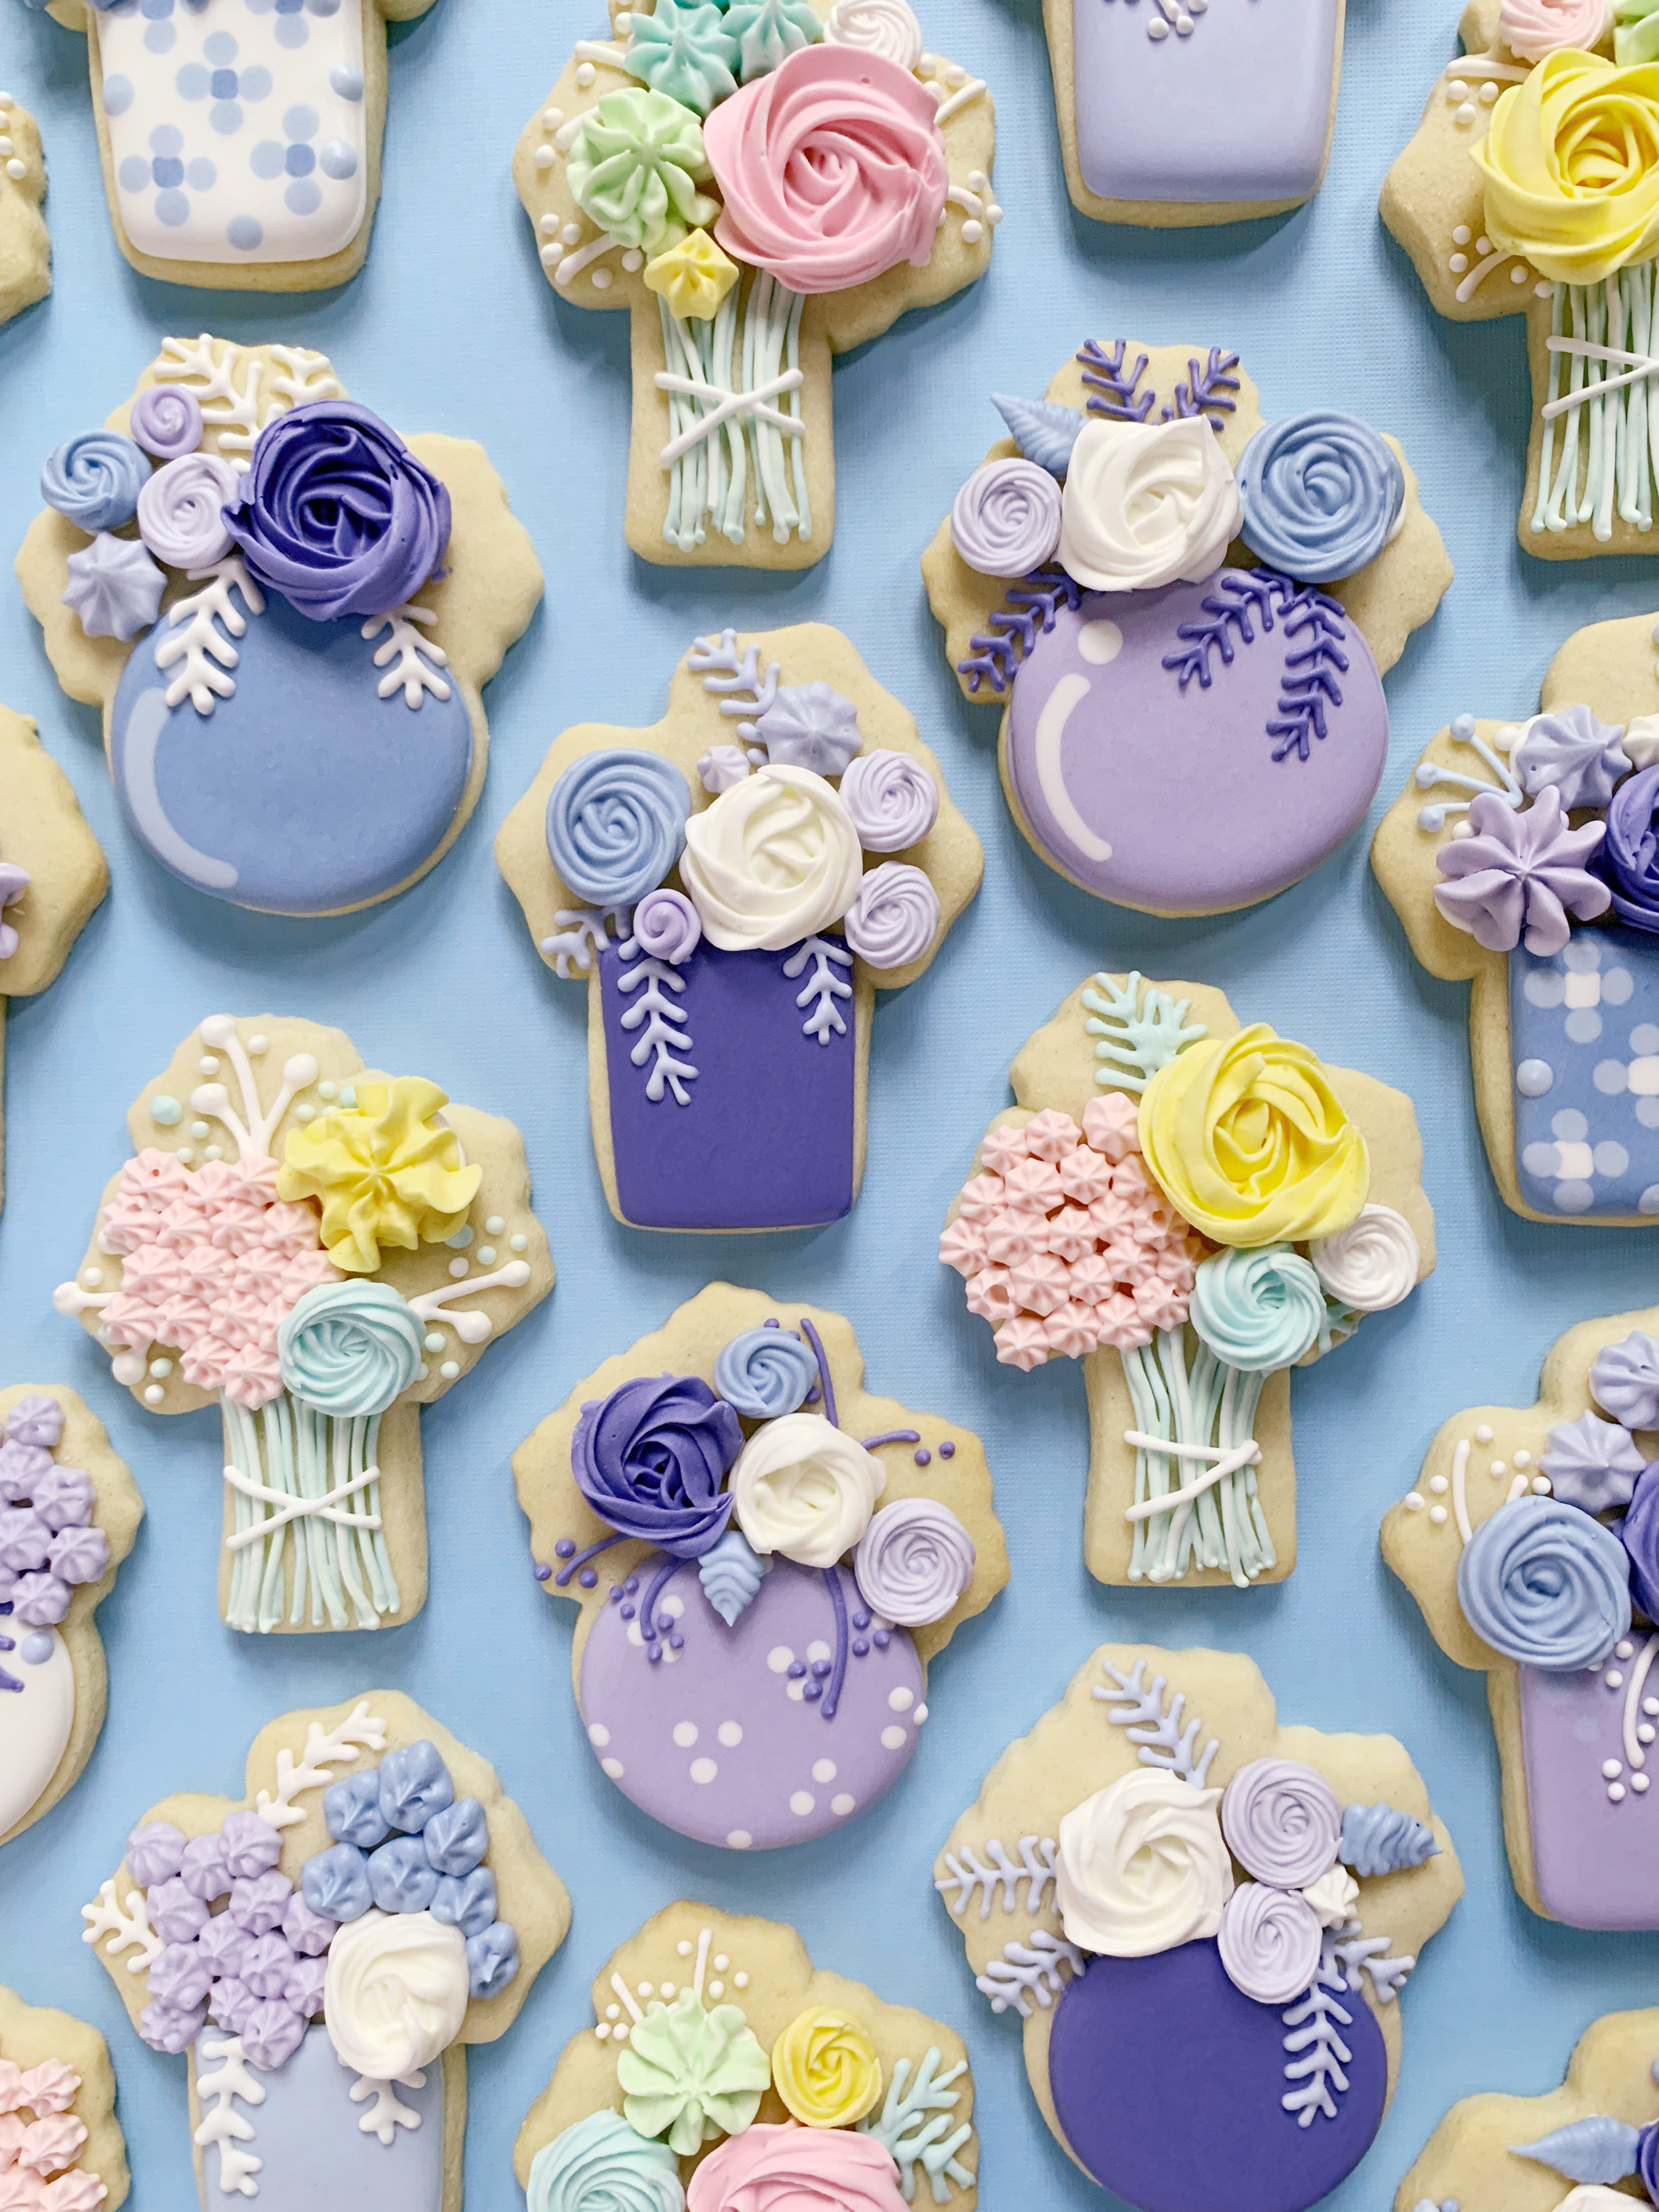 cookies decorated to look like bouquets of flowers on a purple background